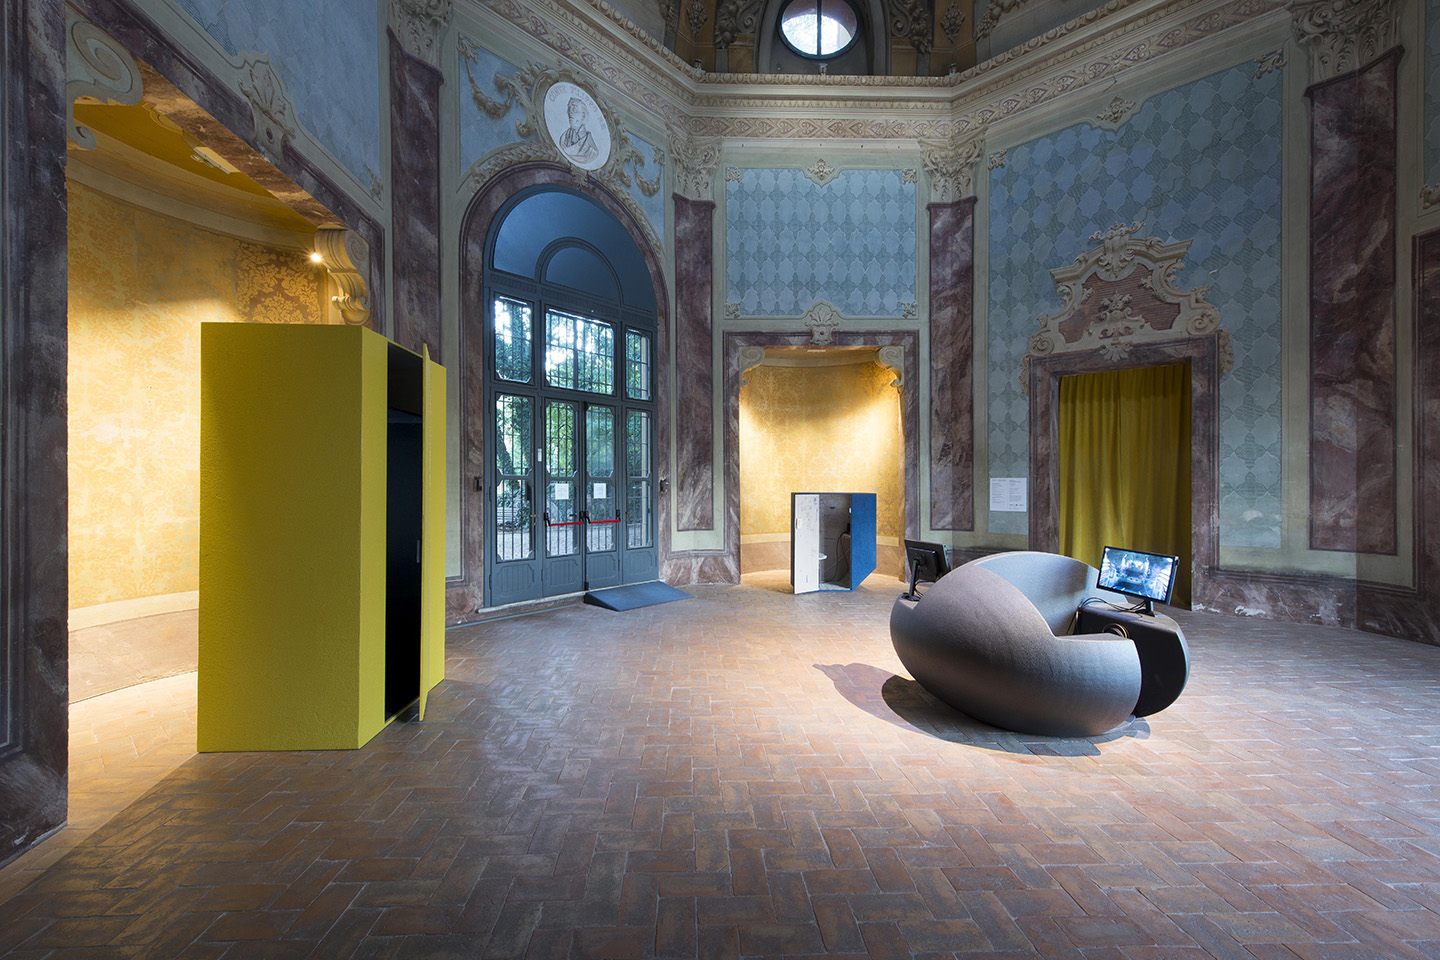 Studio La Sala Milano the owl of minerva spreads its wings only with the falling